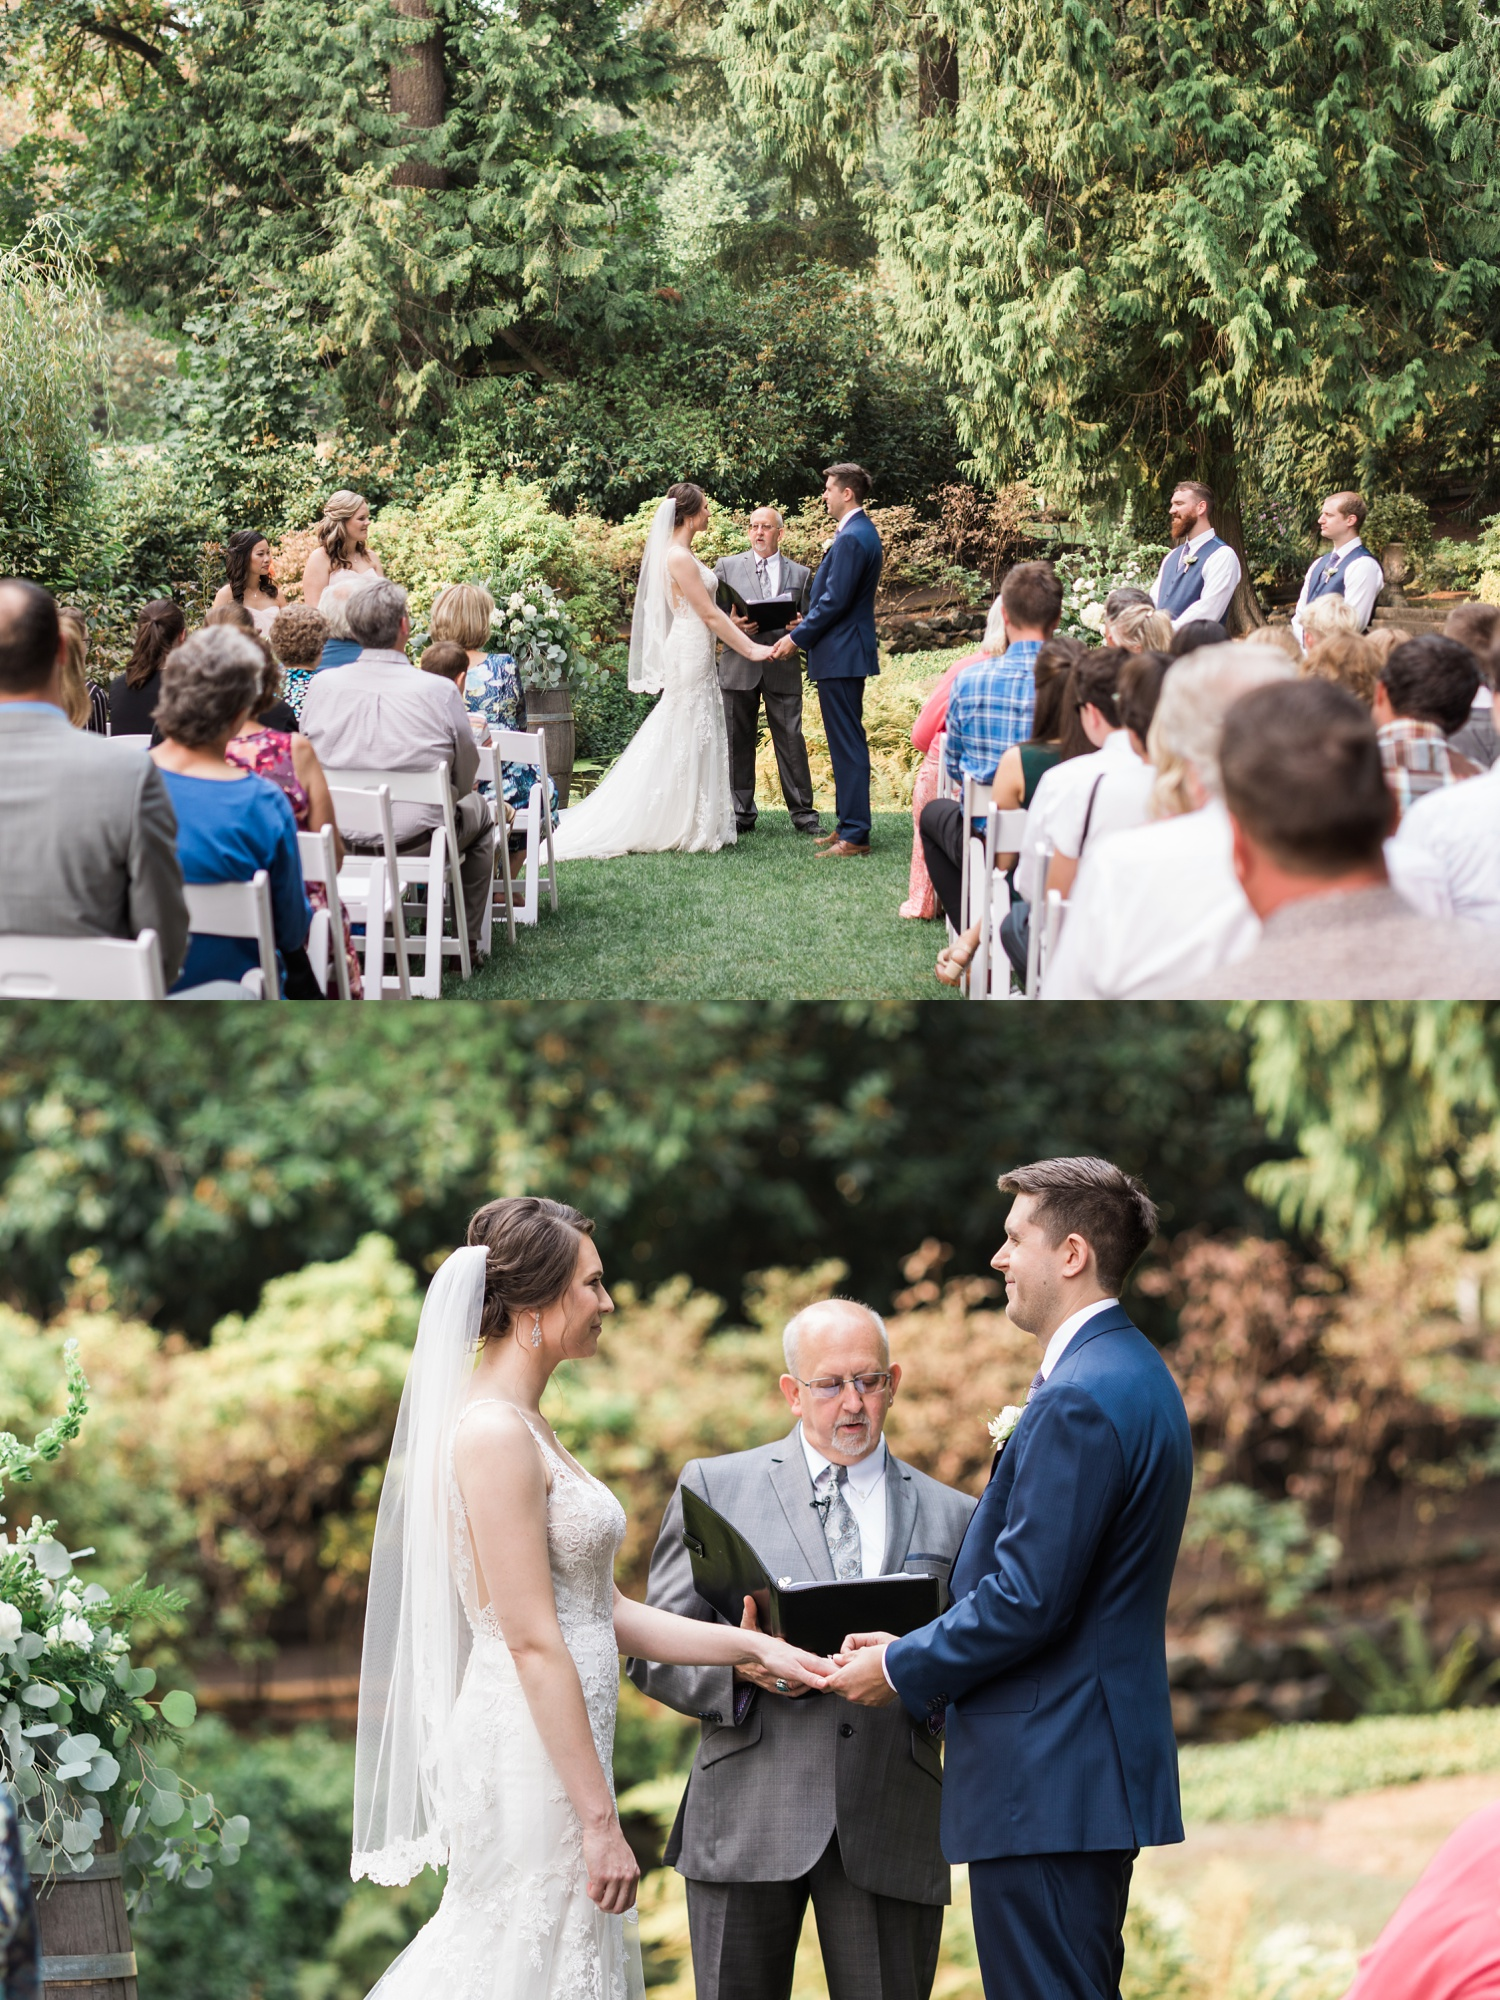 A bride and groom hold hands during their outdoor wedding ceremony at Chateau Lill in Woodinville, a wedding venue near Seattle, WA. | Joanna Monger Photography | Seattle & Snohomish Photographer